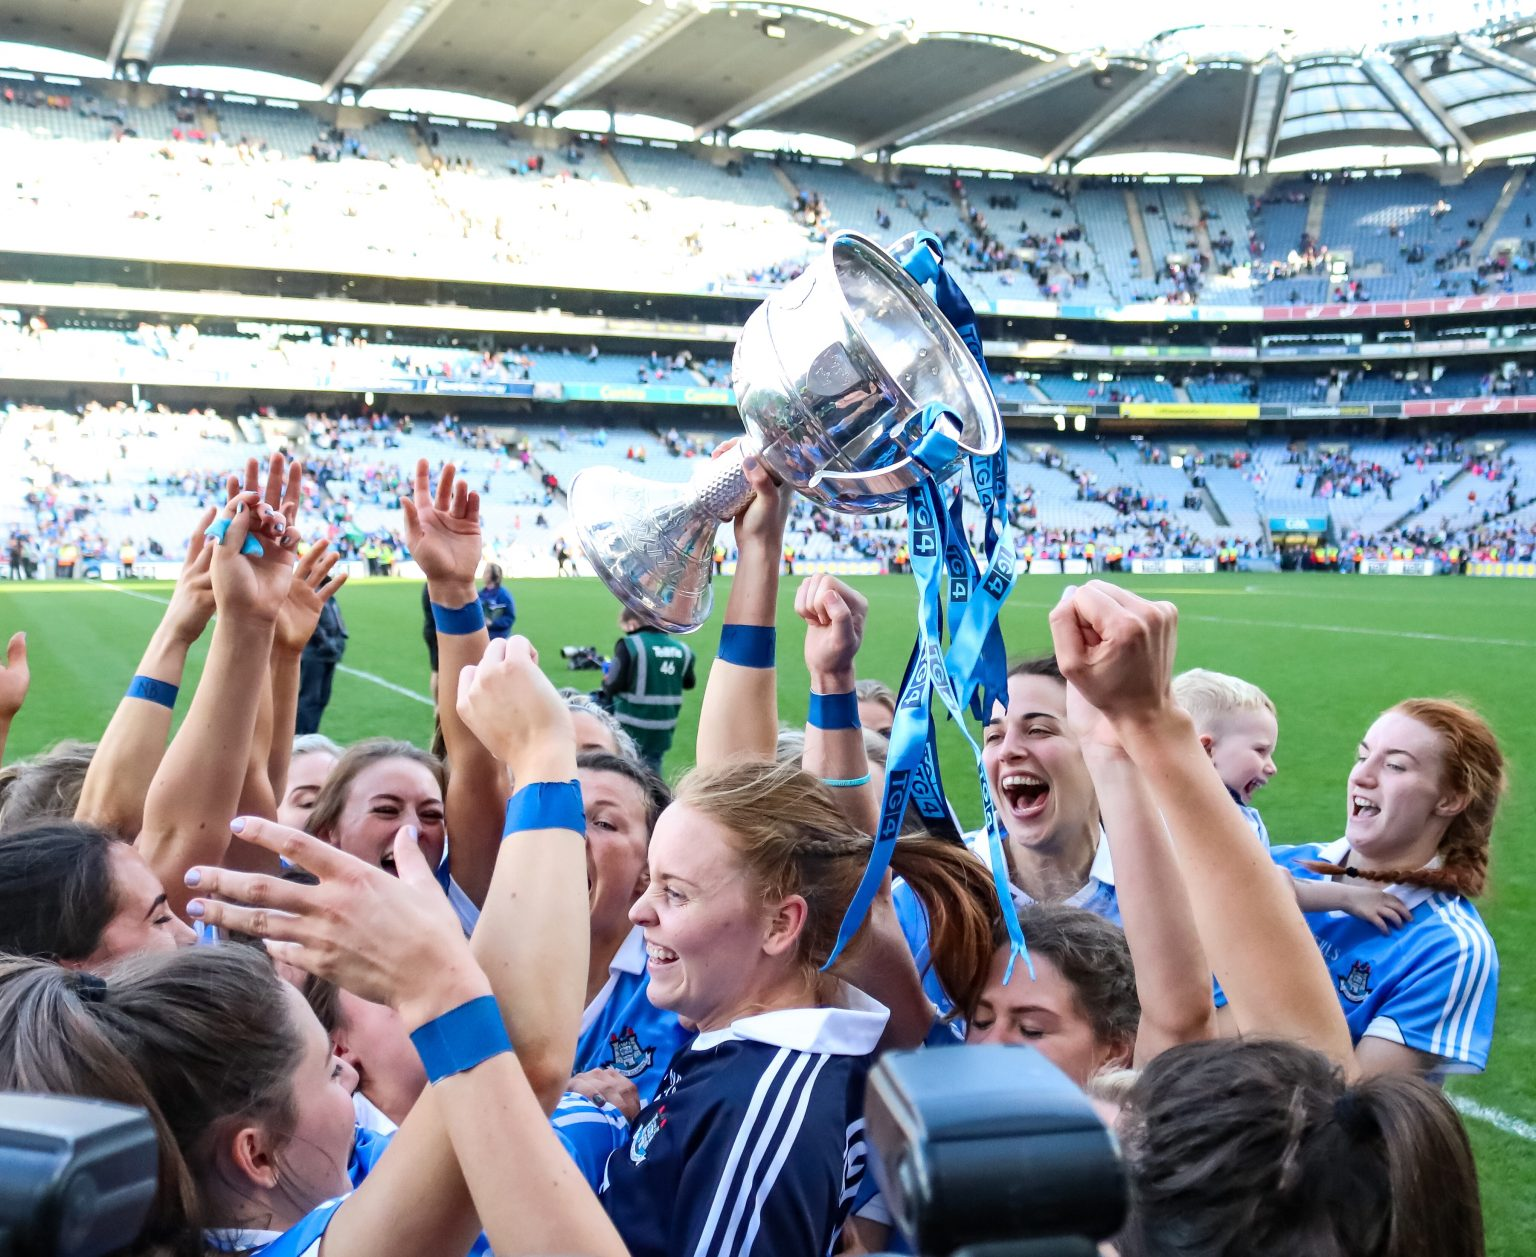 DUBLIN TO FACE DONEGAL IN OPENING ROUND OF 2018 LIDL NATIONAL FOOTBALL LEAGUE